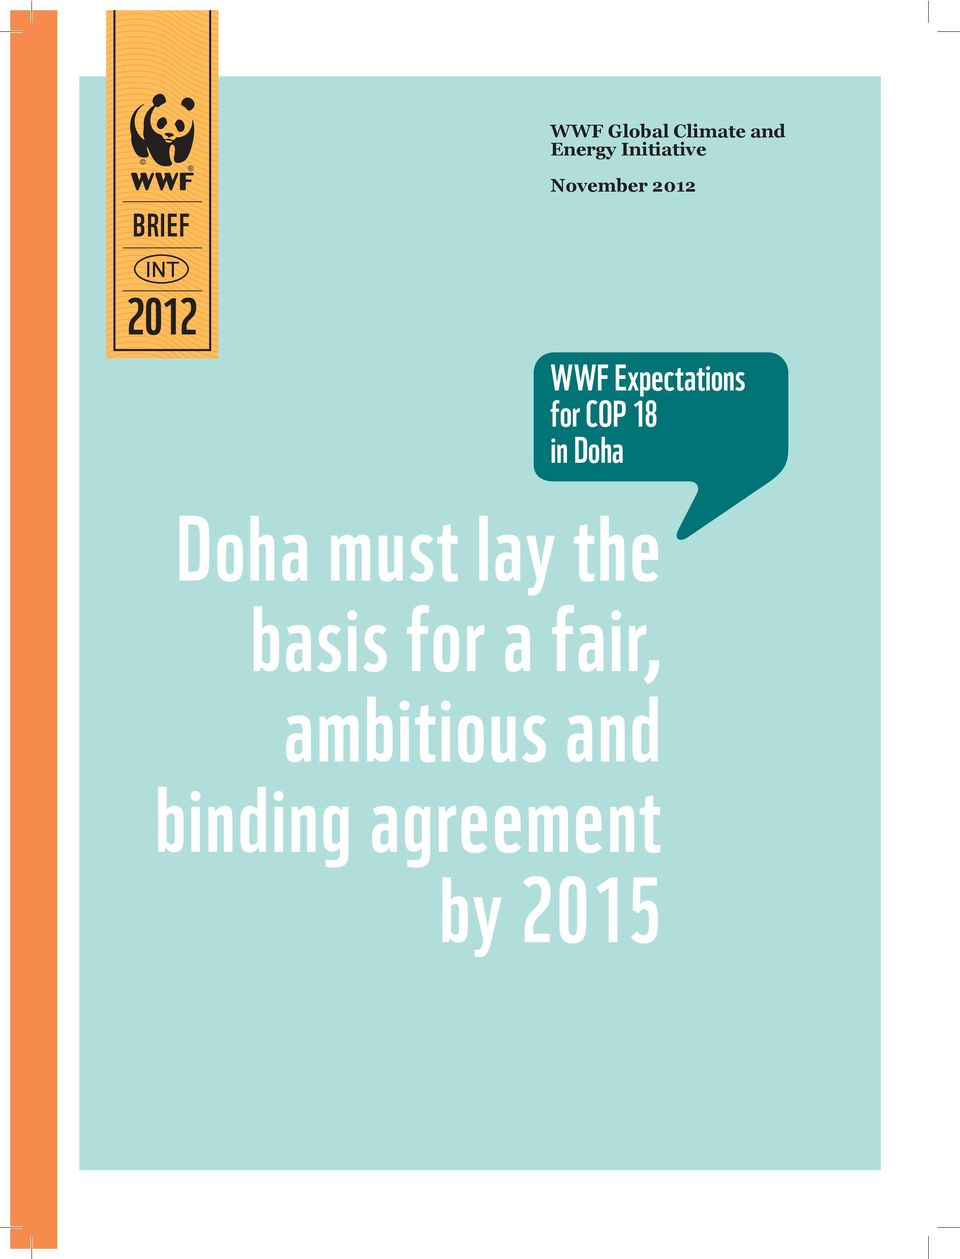 for COP 18 in Doha Doha must lay the basis